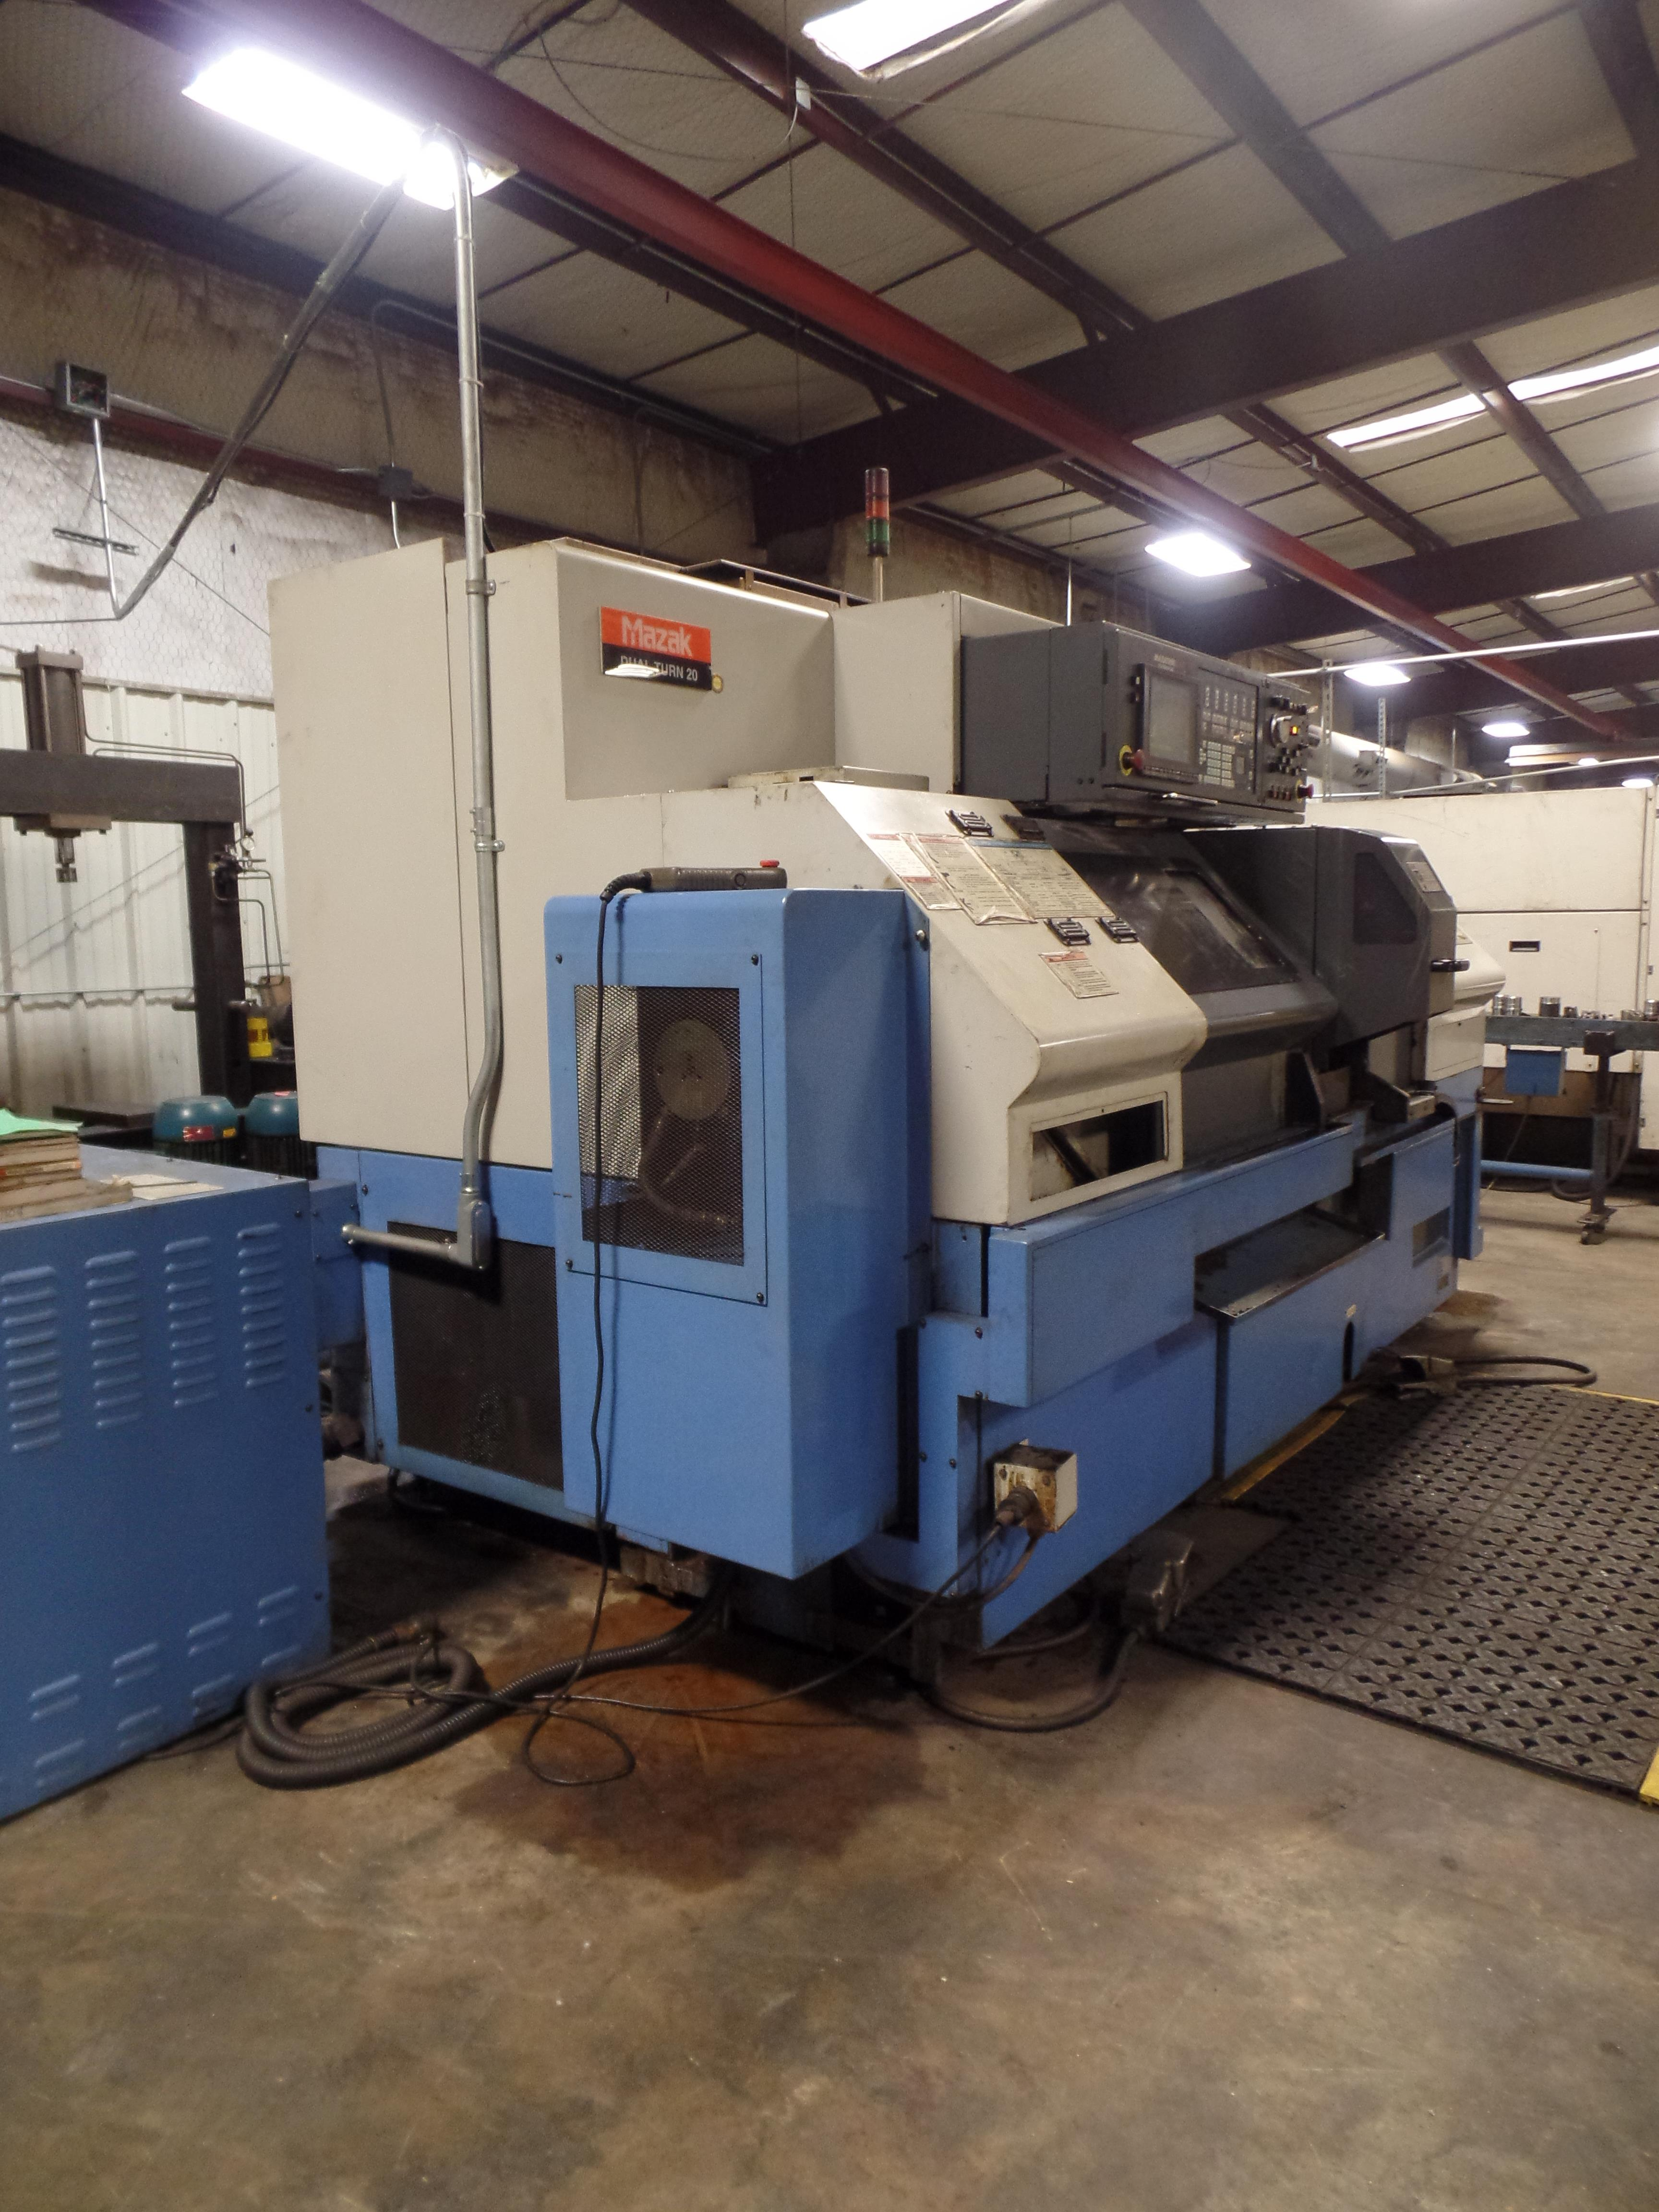 Lot 5 - 2002 Mazak Dual Turn 20 4 Axis Twin Spindle Twin Turret Opposed CNC Turning Center, rear discharge